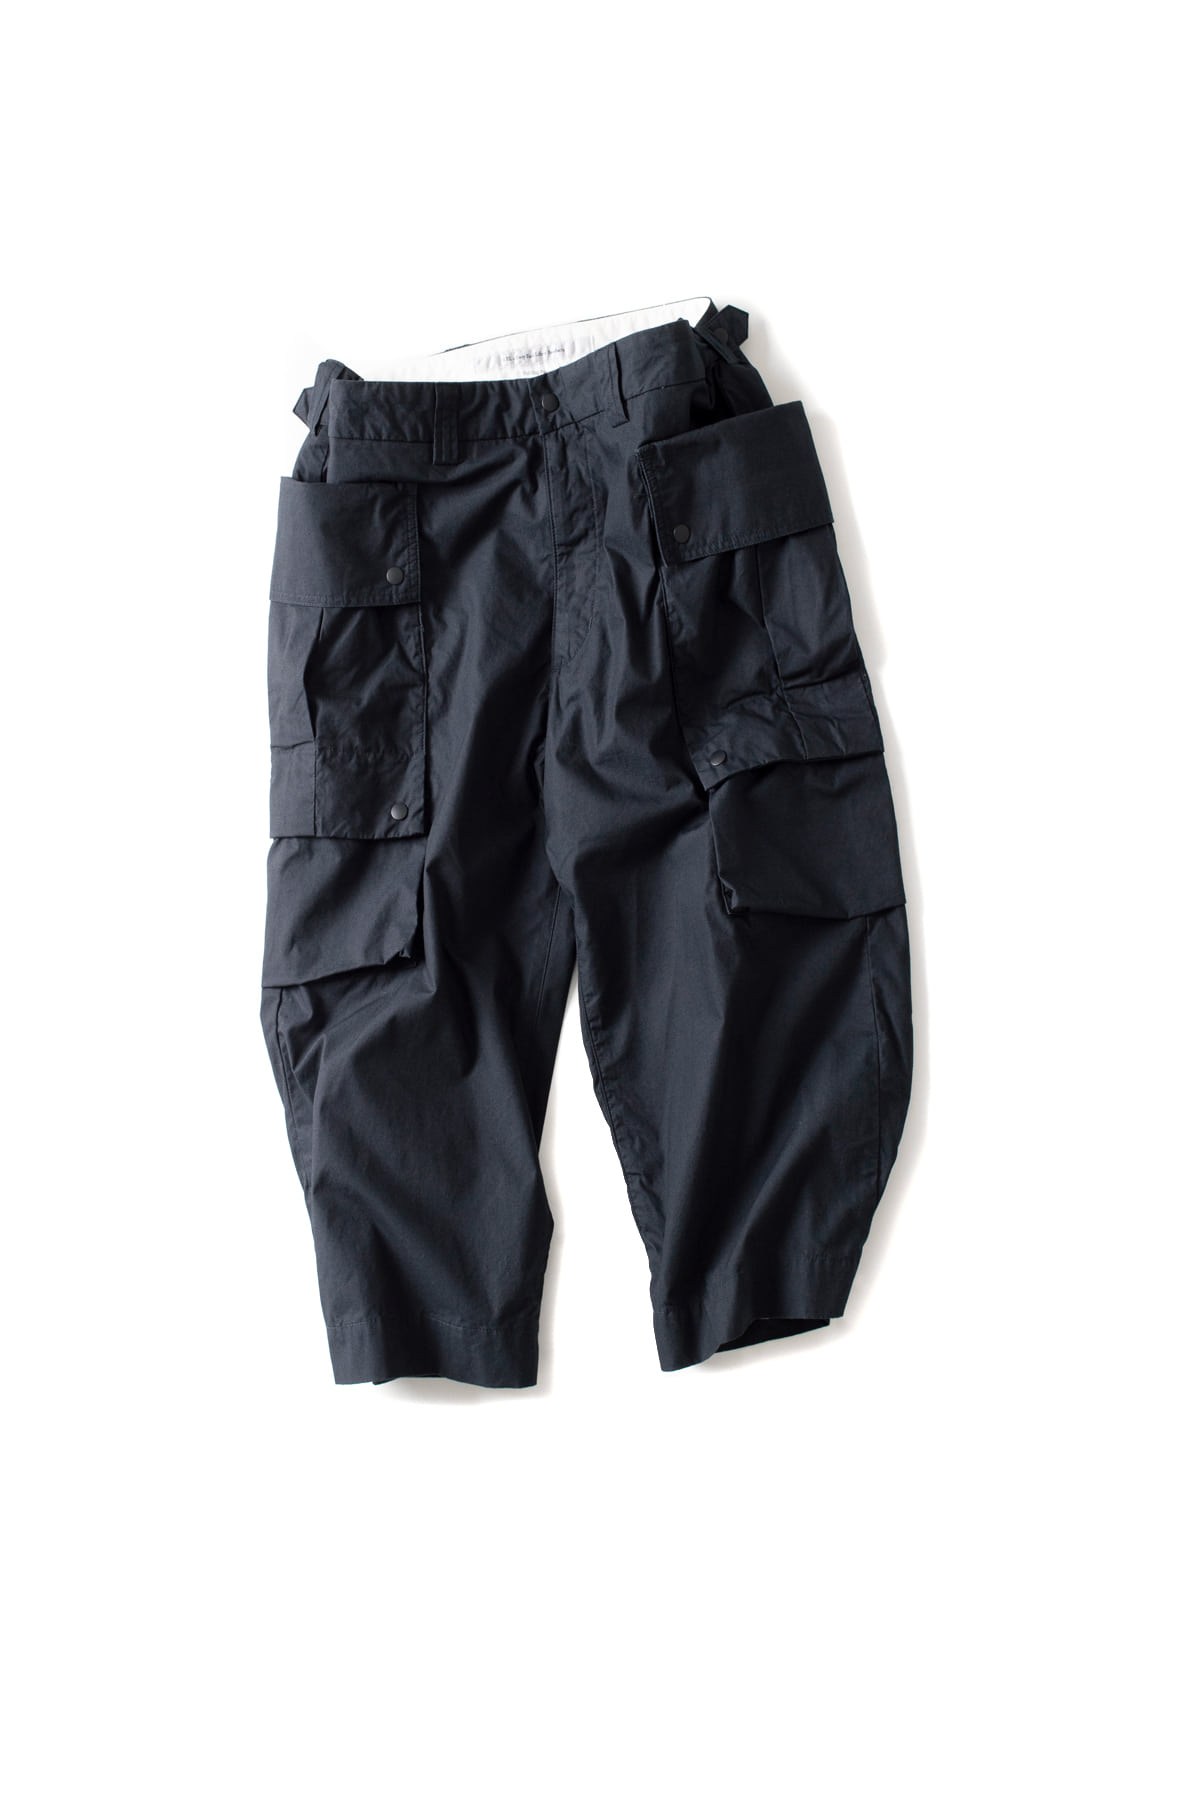 EEL : Bulldog Pants (Navy)